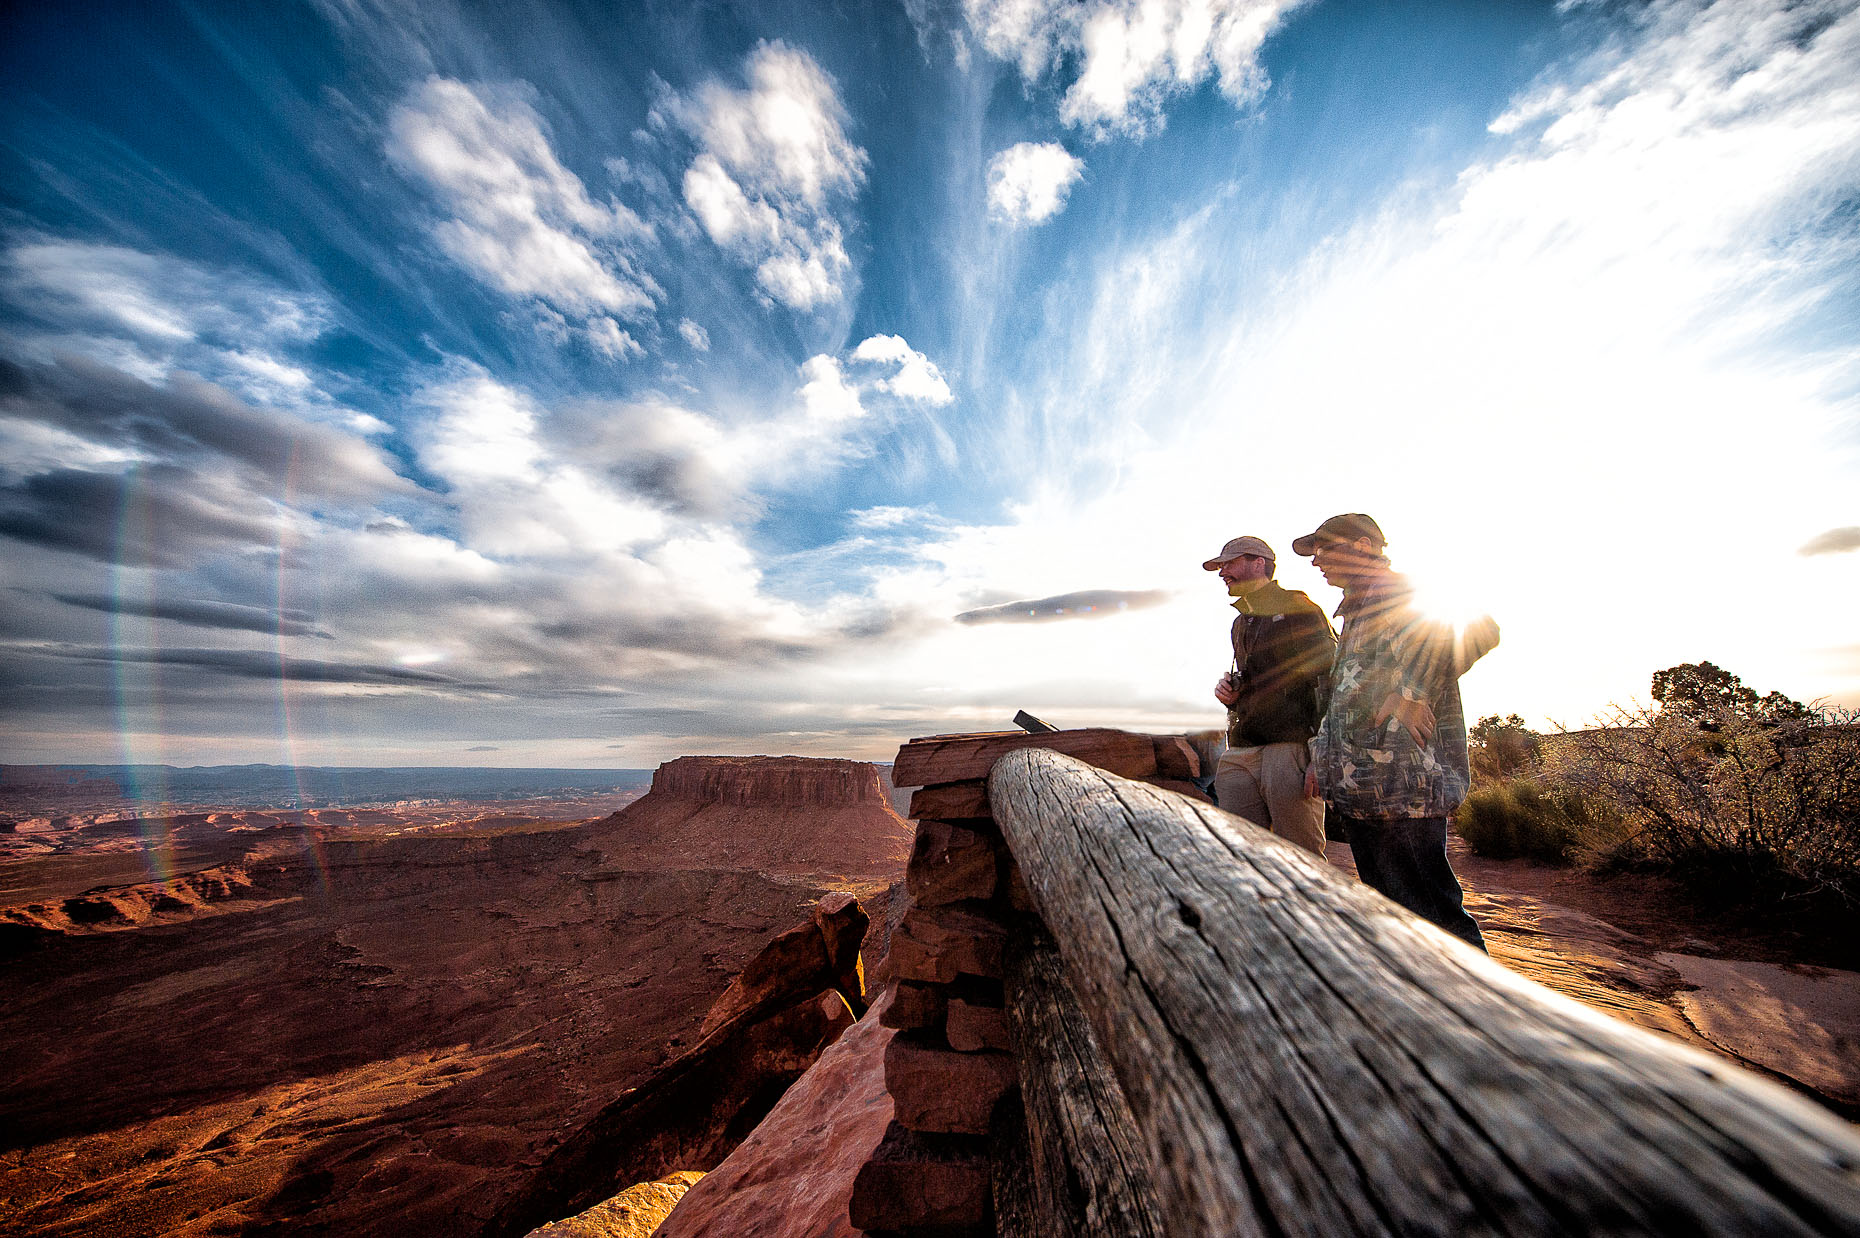 aaron-ingrao-Dead-Horse-Point-canyonlands-Moab-Utah-sunset-sunflair